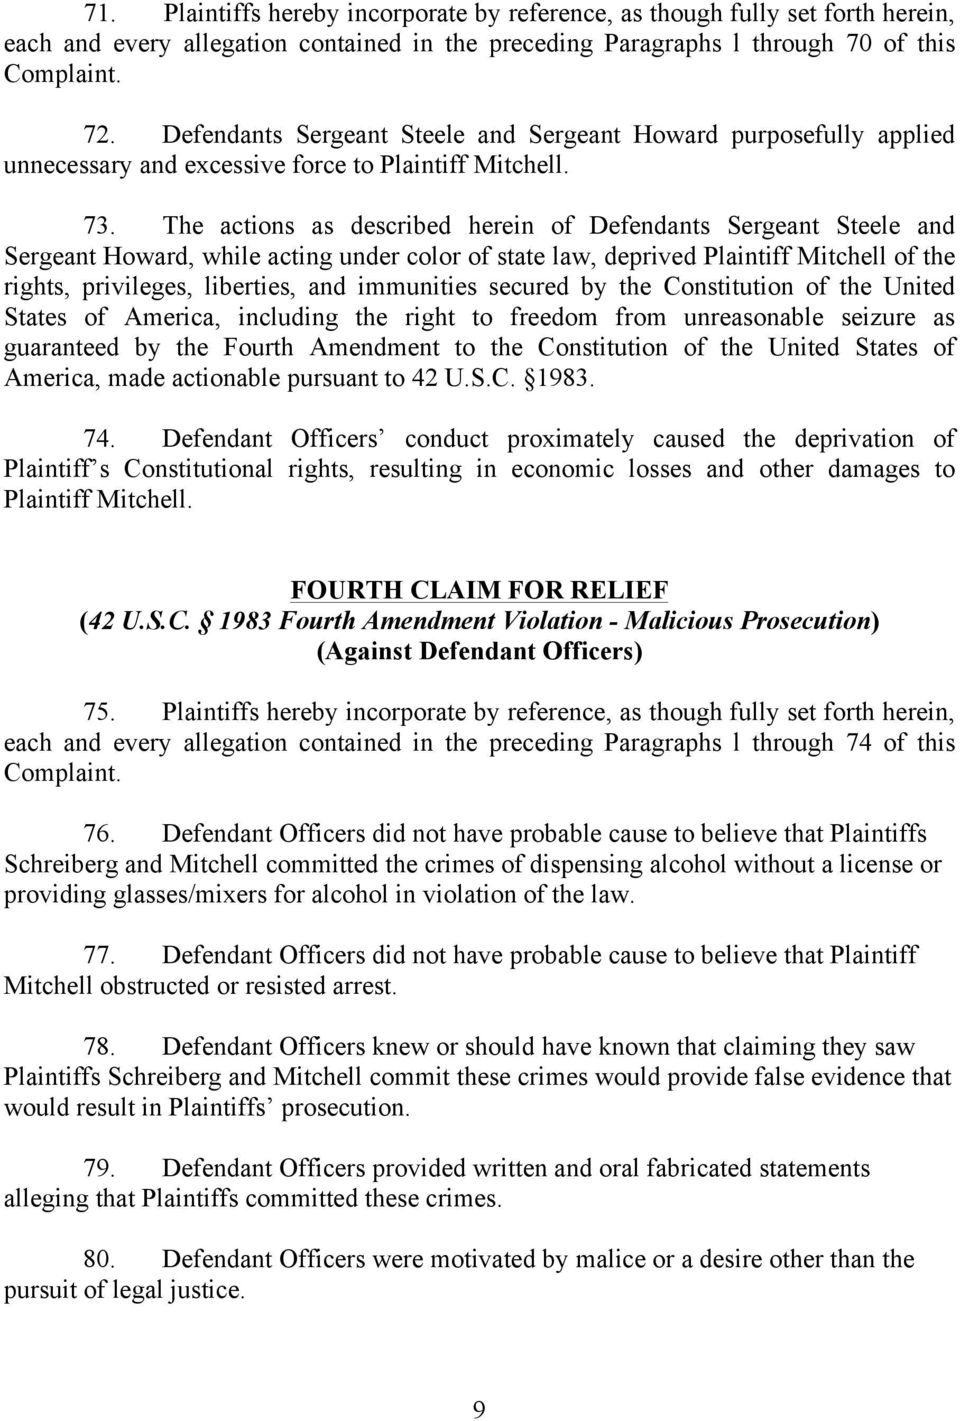 The actions as described herein of Defendants Sergeant Steele and Sergeant Howard, while acting under color of state law, deprived Plaintiff Mitchell of the rights, privileges, liberties, and